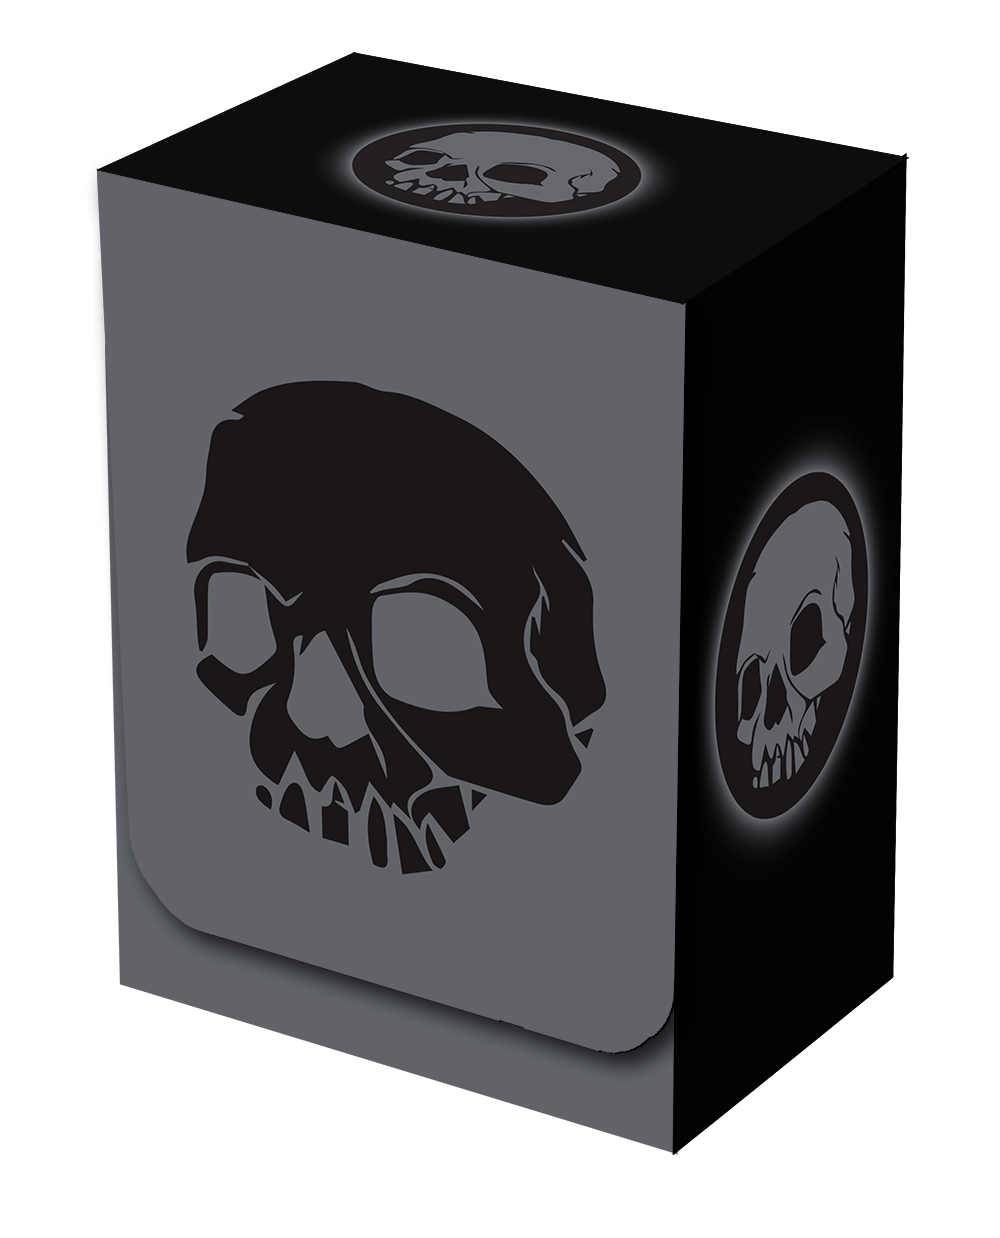 Deckbox - Absolute Iconic Skull